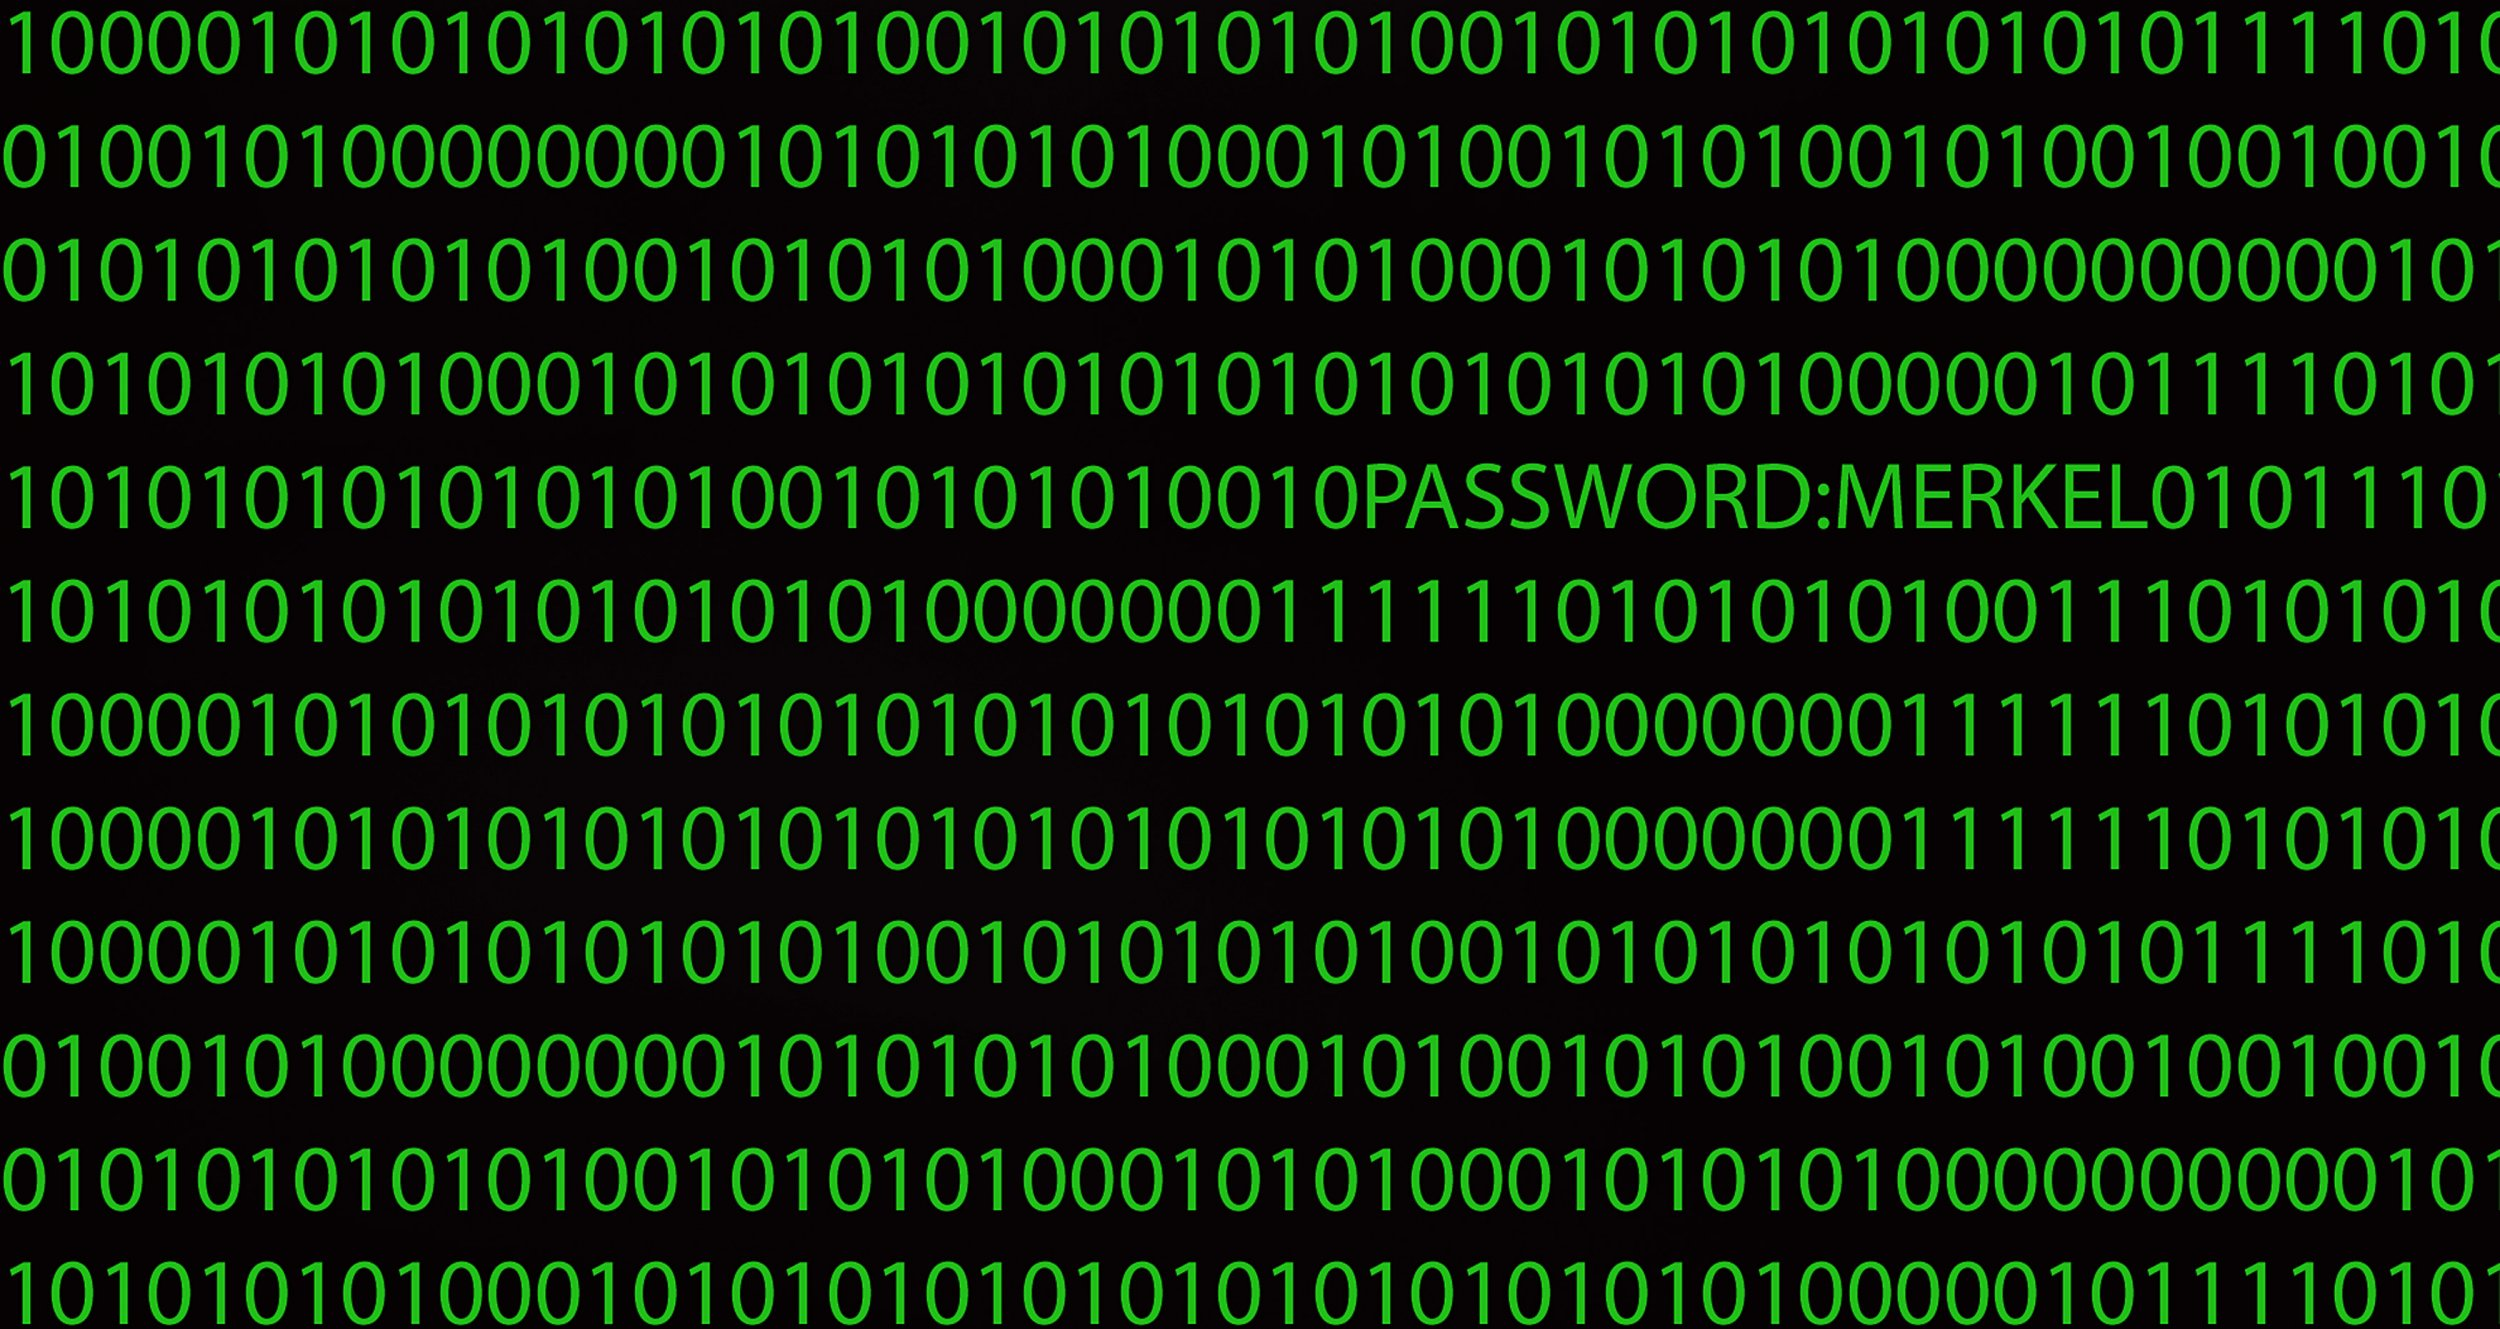 In The Crack accounts and passwords